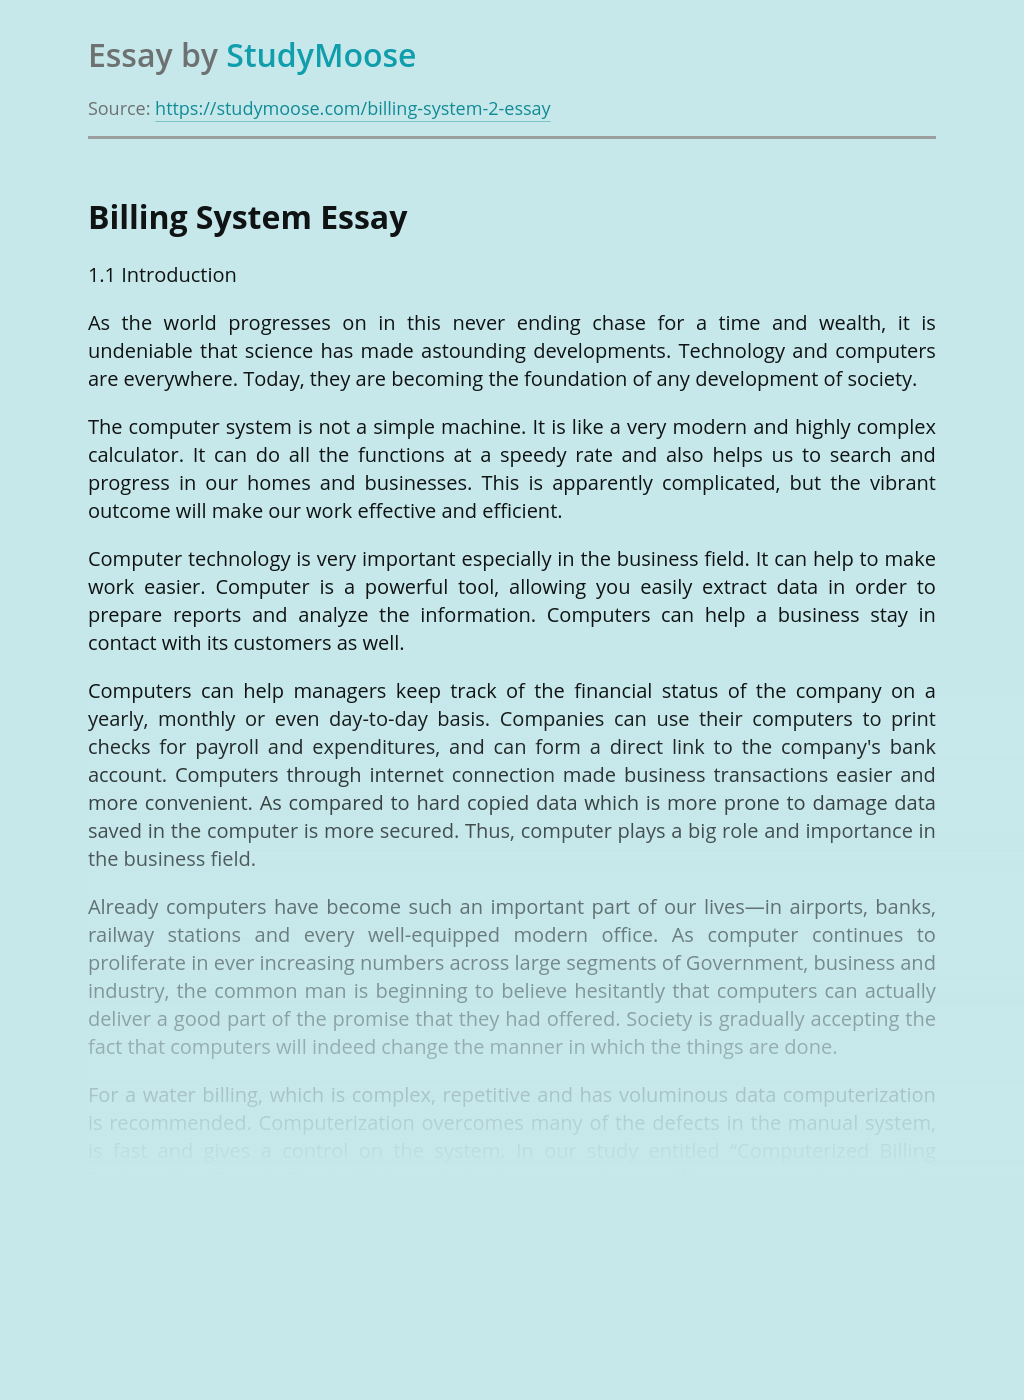 Critical Analysis of Billing System